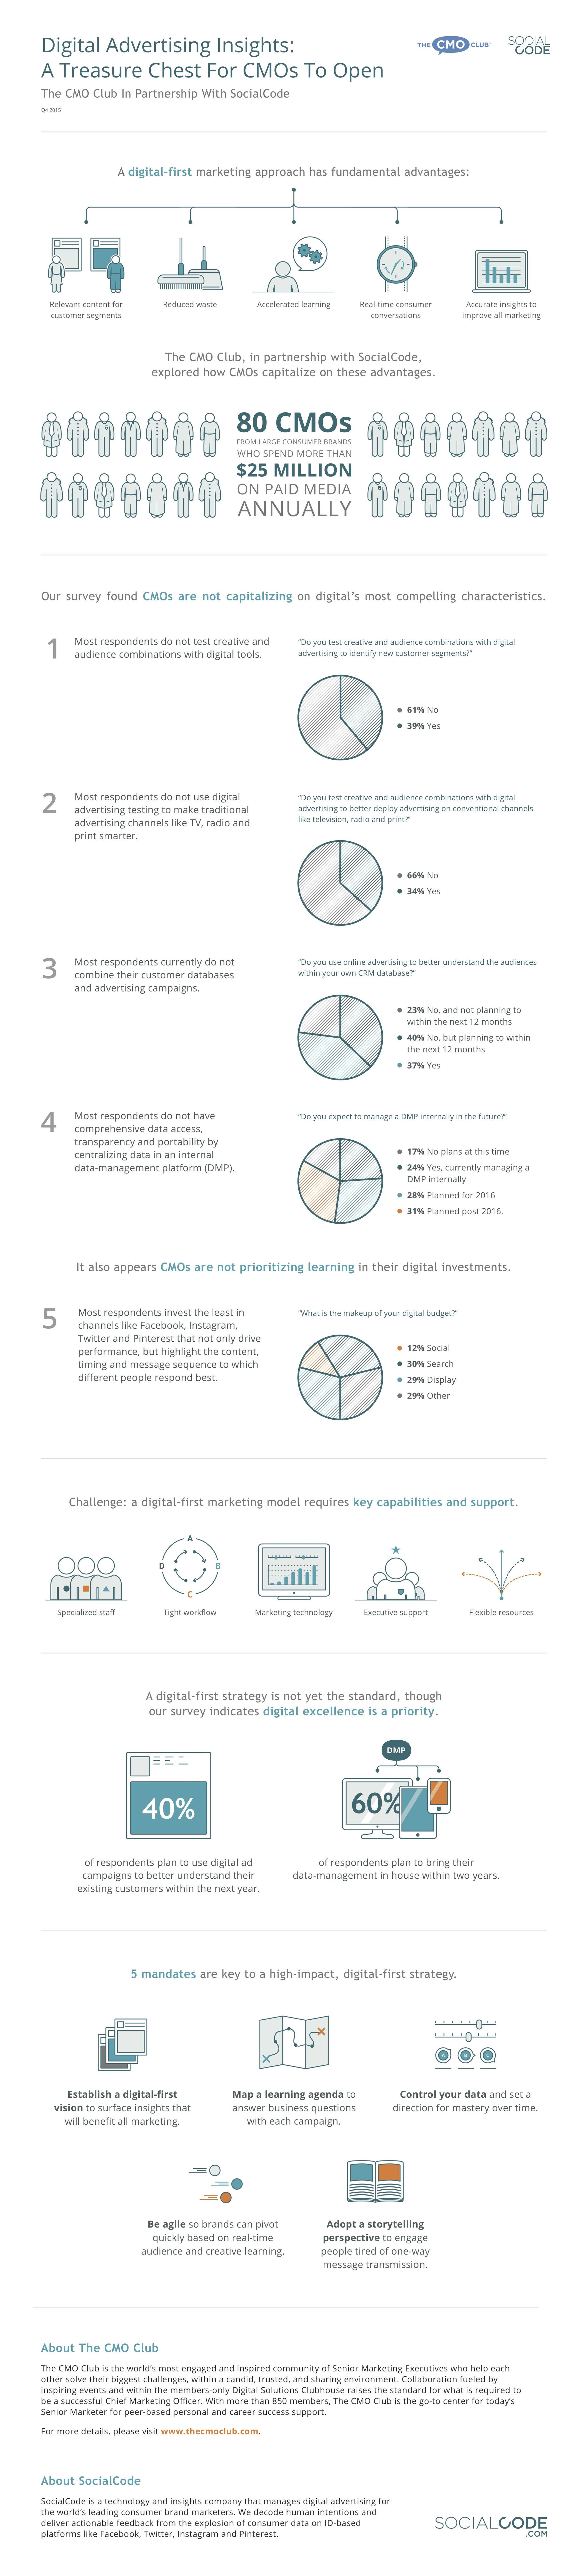 SocialCode-Infographic_CMO-Club-Solutions-Guide_Digital-Advertising-Insights_A-Treasure-Chest-for-CMOs-to-Open_Q4_2015.jpg